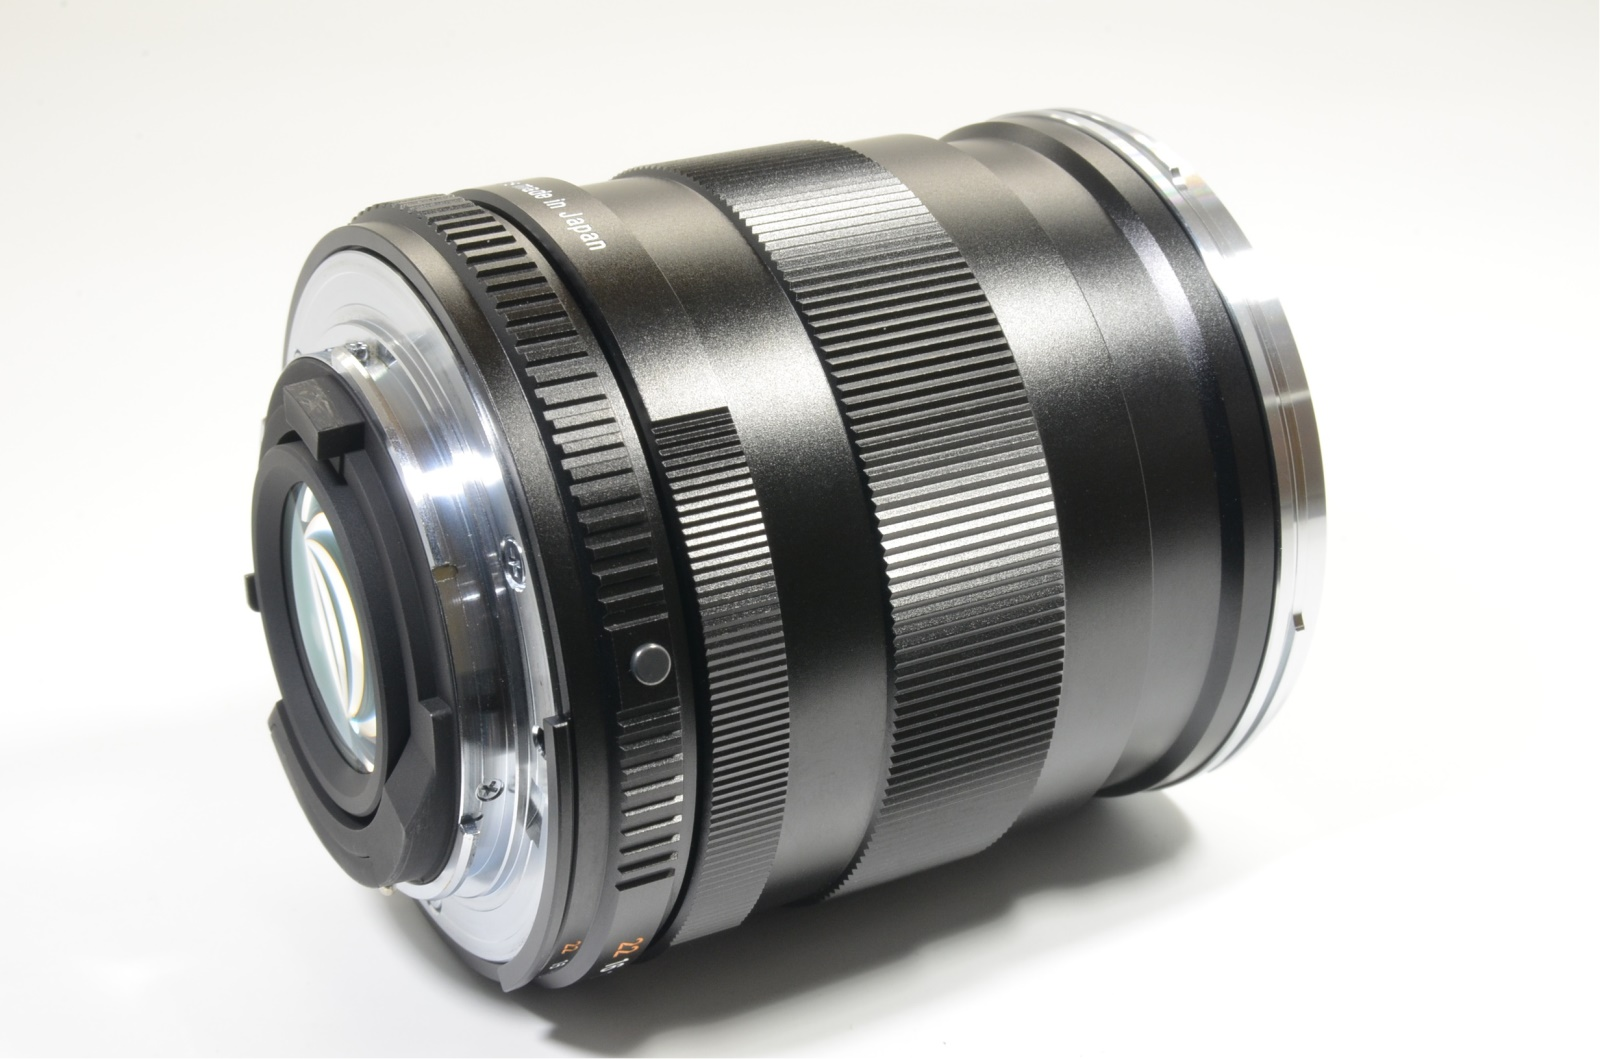 carl zeiss distagon t* 28mm f2 zf.2 lens for nikon f mount from japan